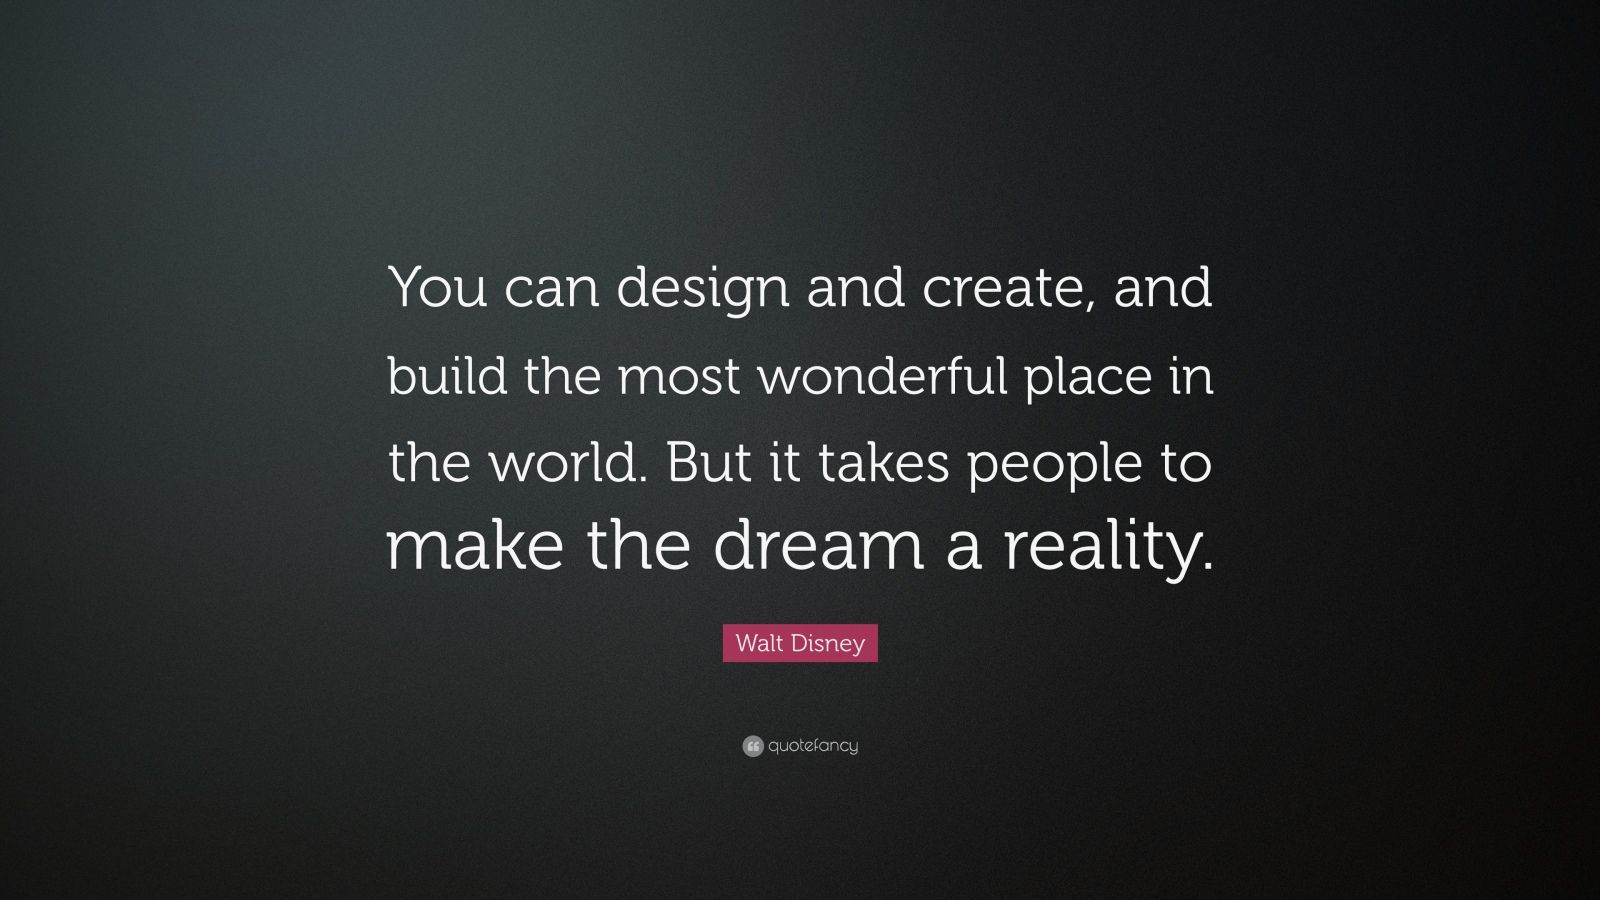 """Walt Disney Quote: """"You can design and create, and build the most wonderful place in the world. But it takes people to make the dream a reality."""""""